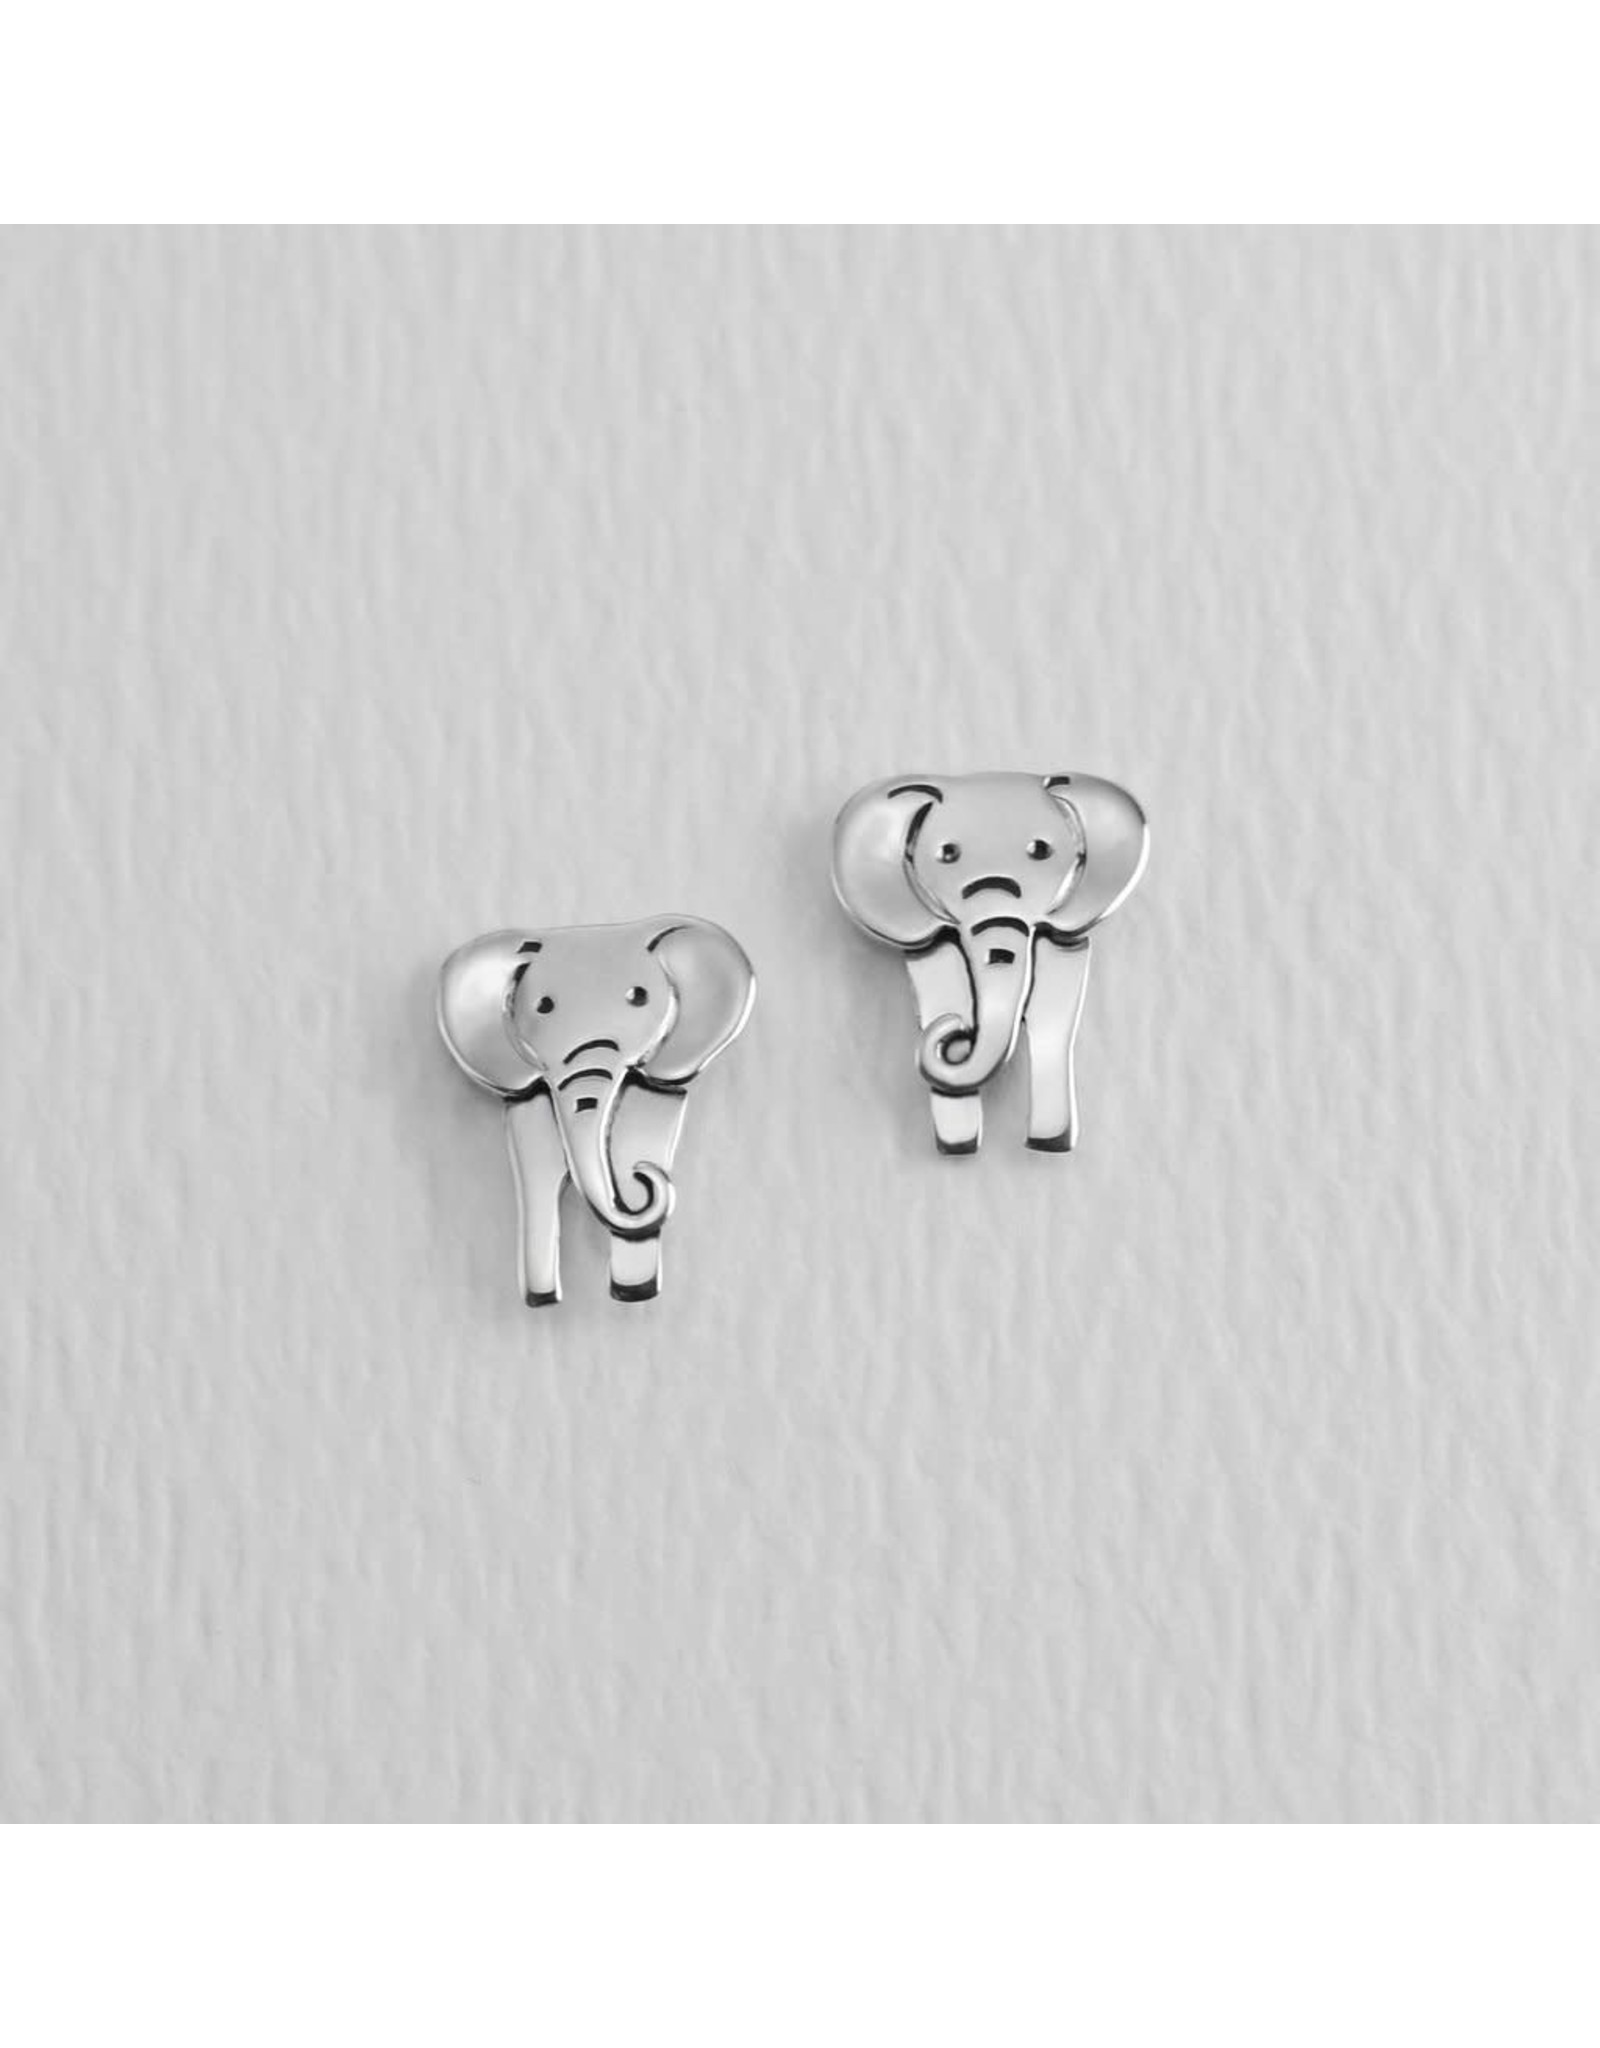 Elephant Sterling Silver Post Earrings, Mexico